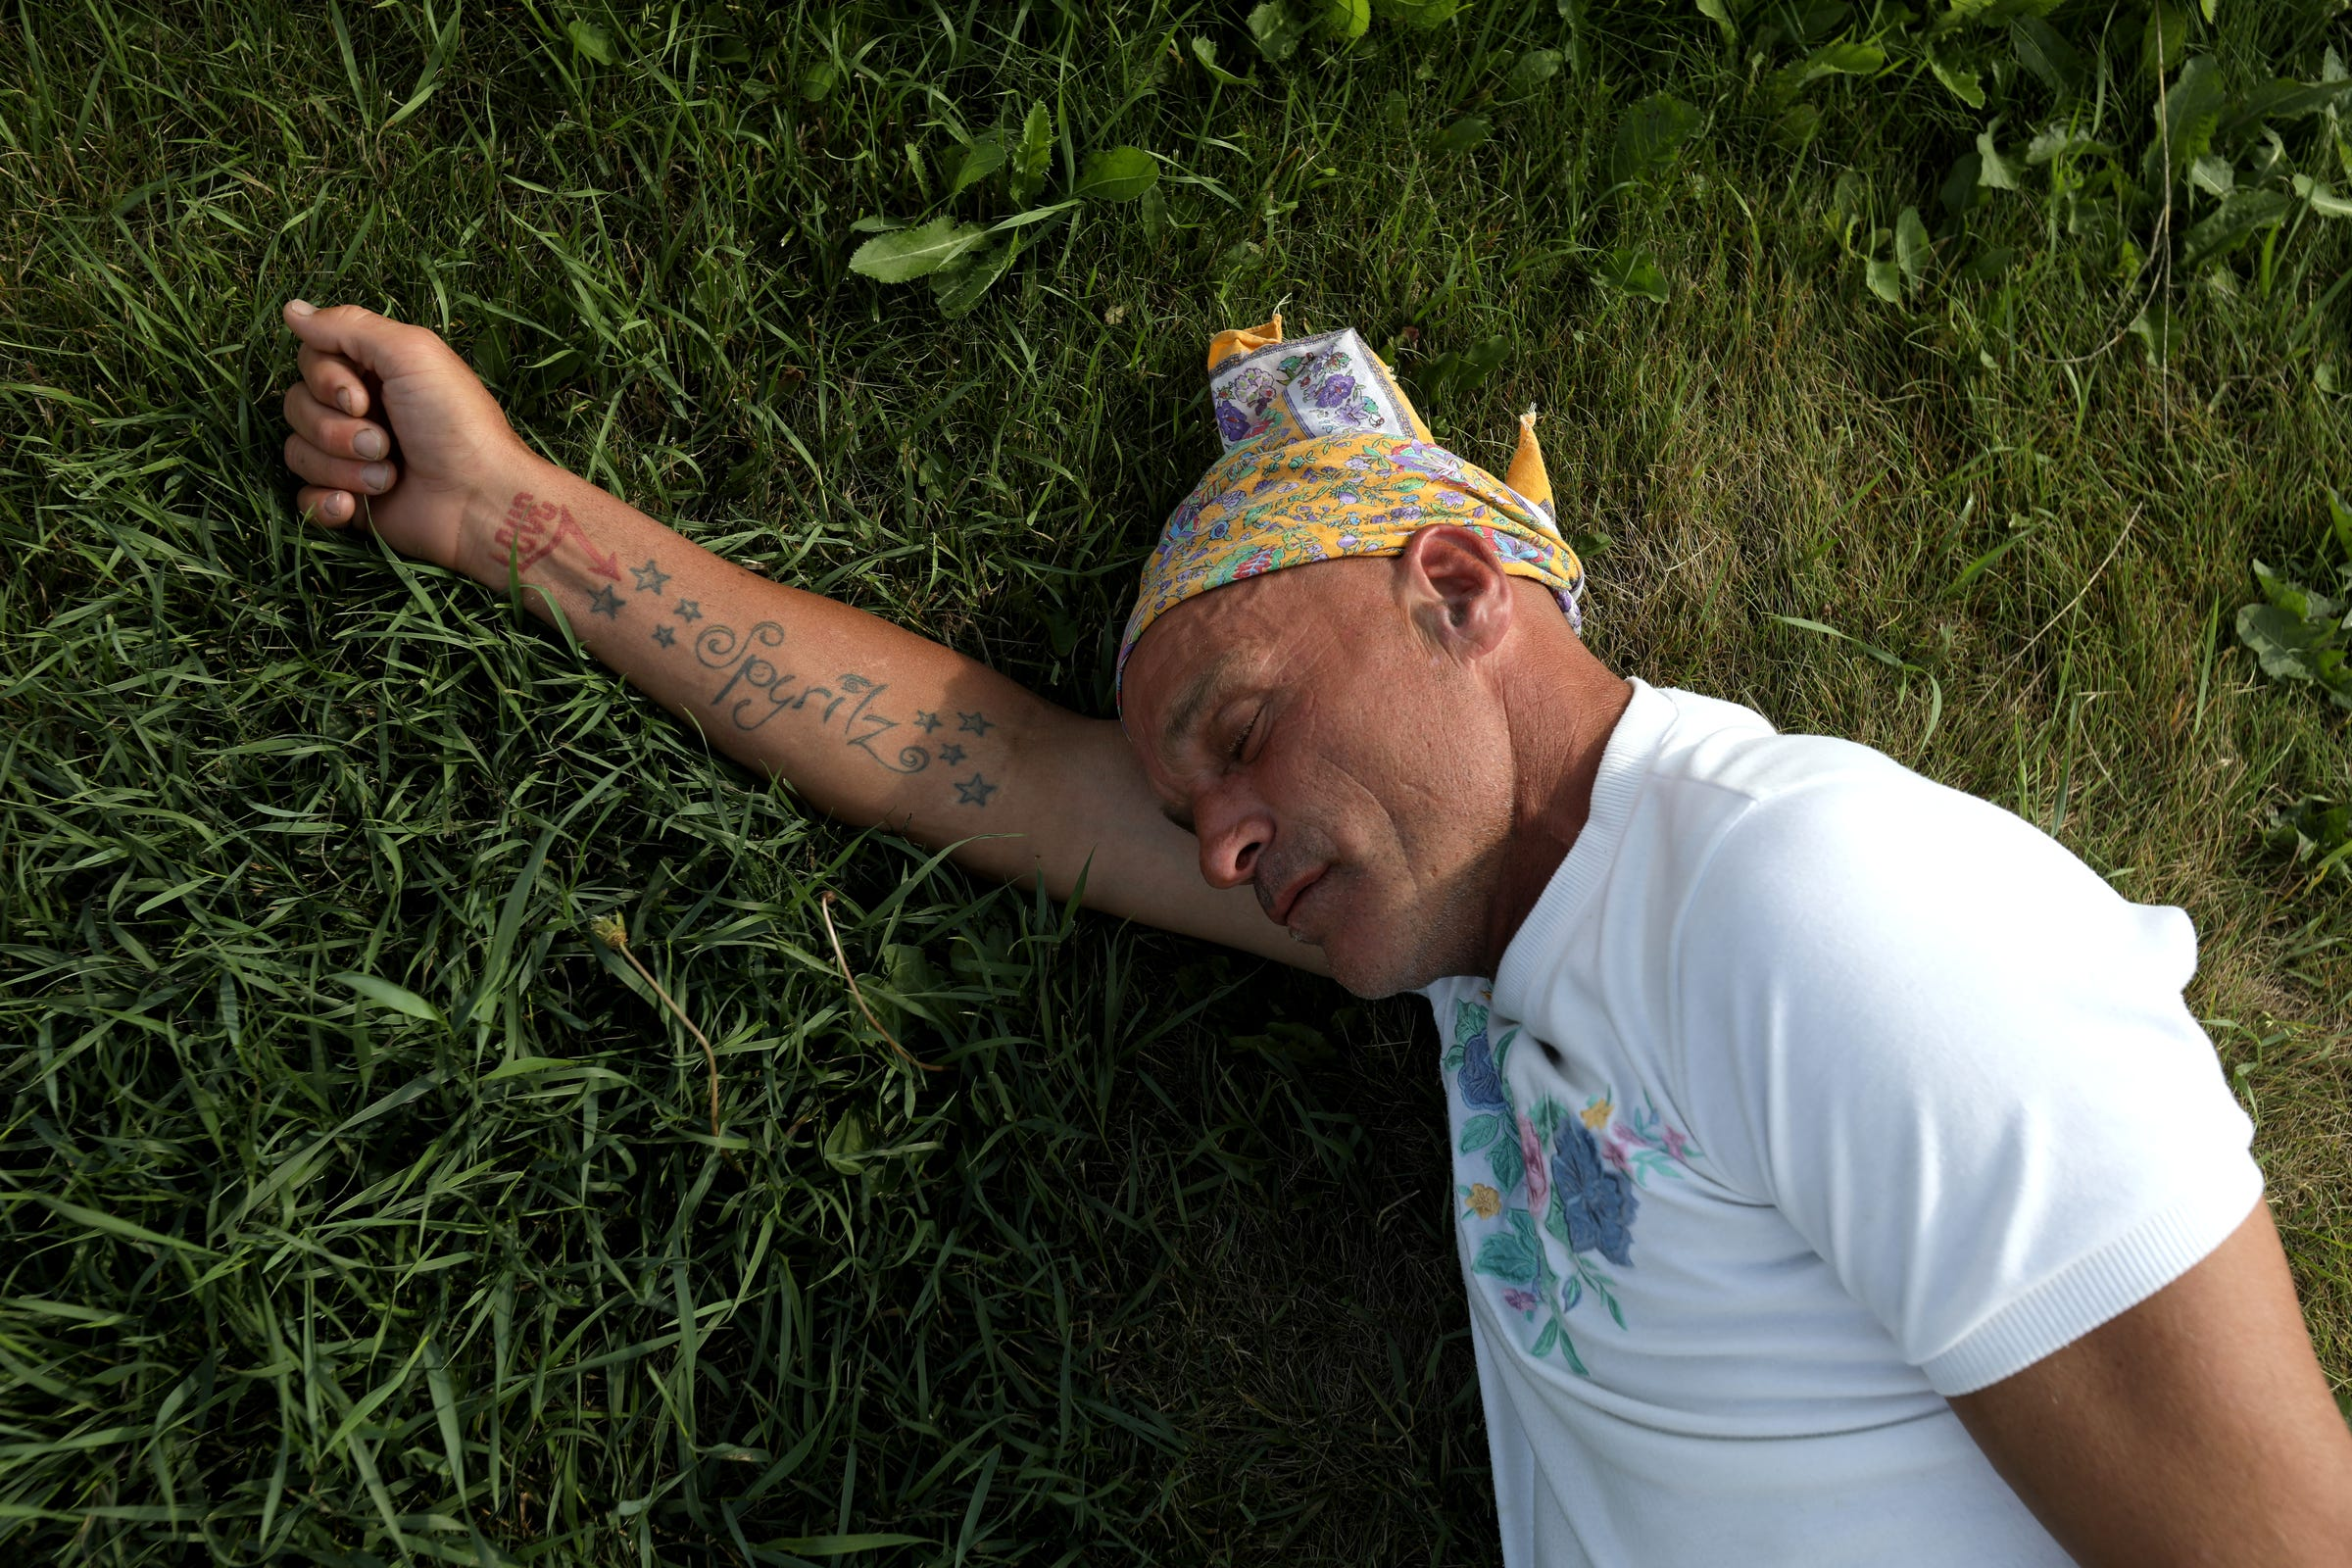 Joe Murphy sleeps underneath the Canadian Tire gas station sign, where many residents of Kenora, Ontario, are used to seeing him. Often people stop by, bringing him food from McDonalds and Tim Hortons, like this man did for him on Wednesday, July 10, 2019